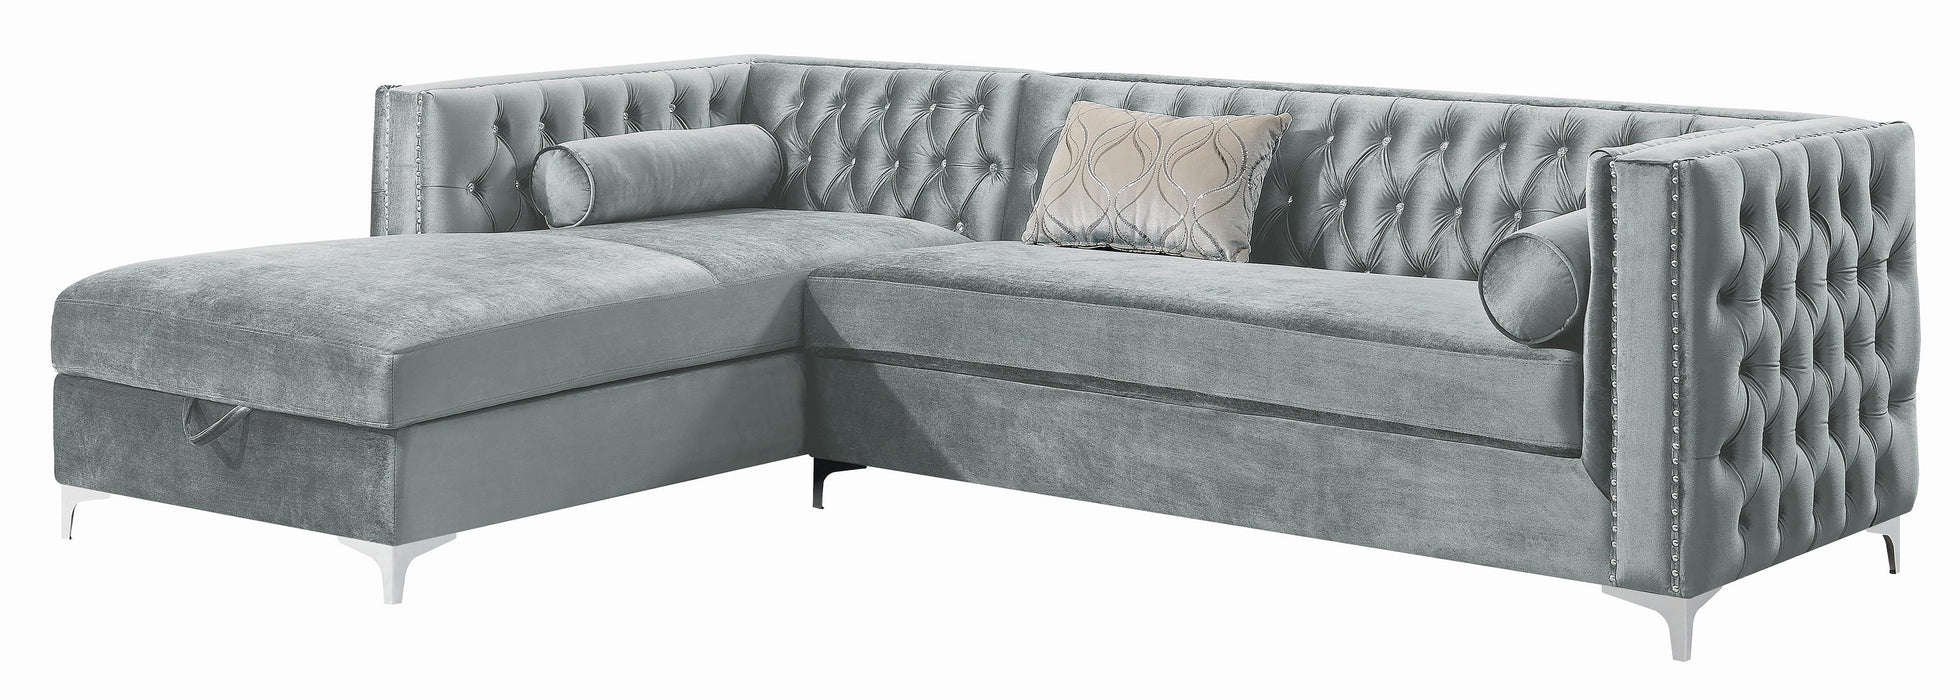 Bellaire_Contemporary_Silver_And_Chrome_Sectional_2